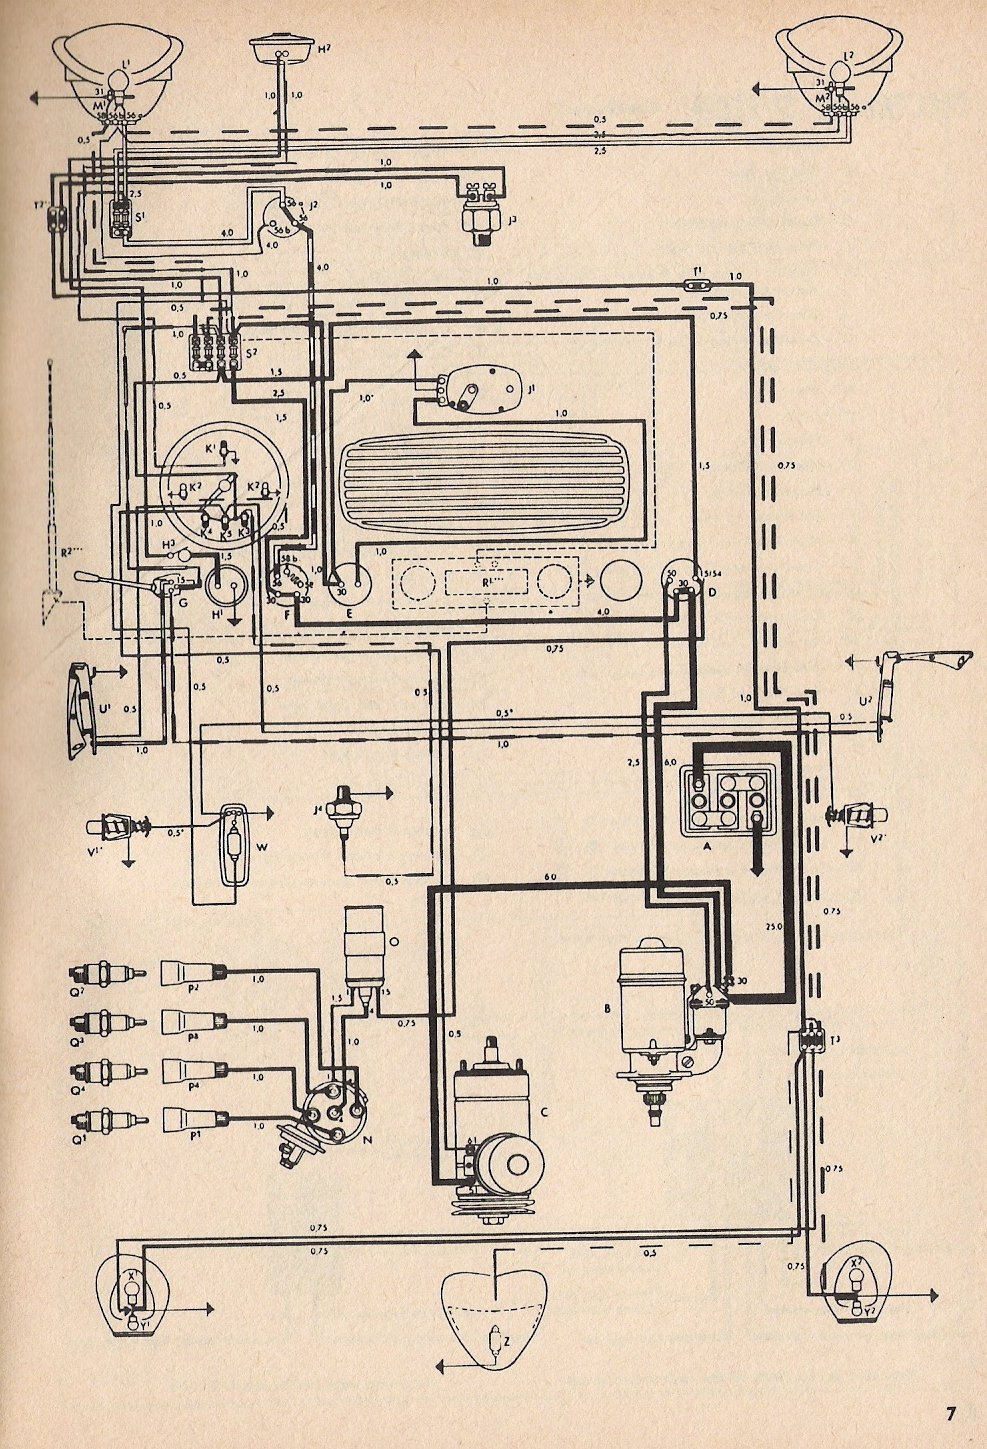 1968 Vw Turn Signal Wiring Diagram Worksheet And Basic 4 Wire Thesamba Com Type 1 Diagrams Rh